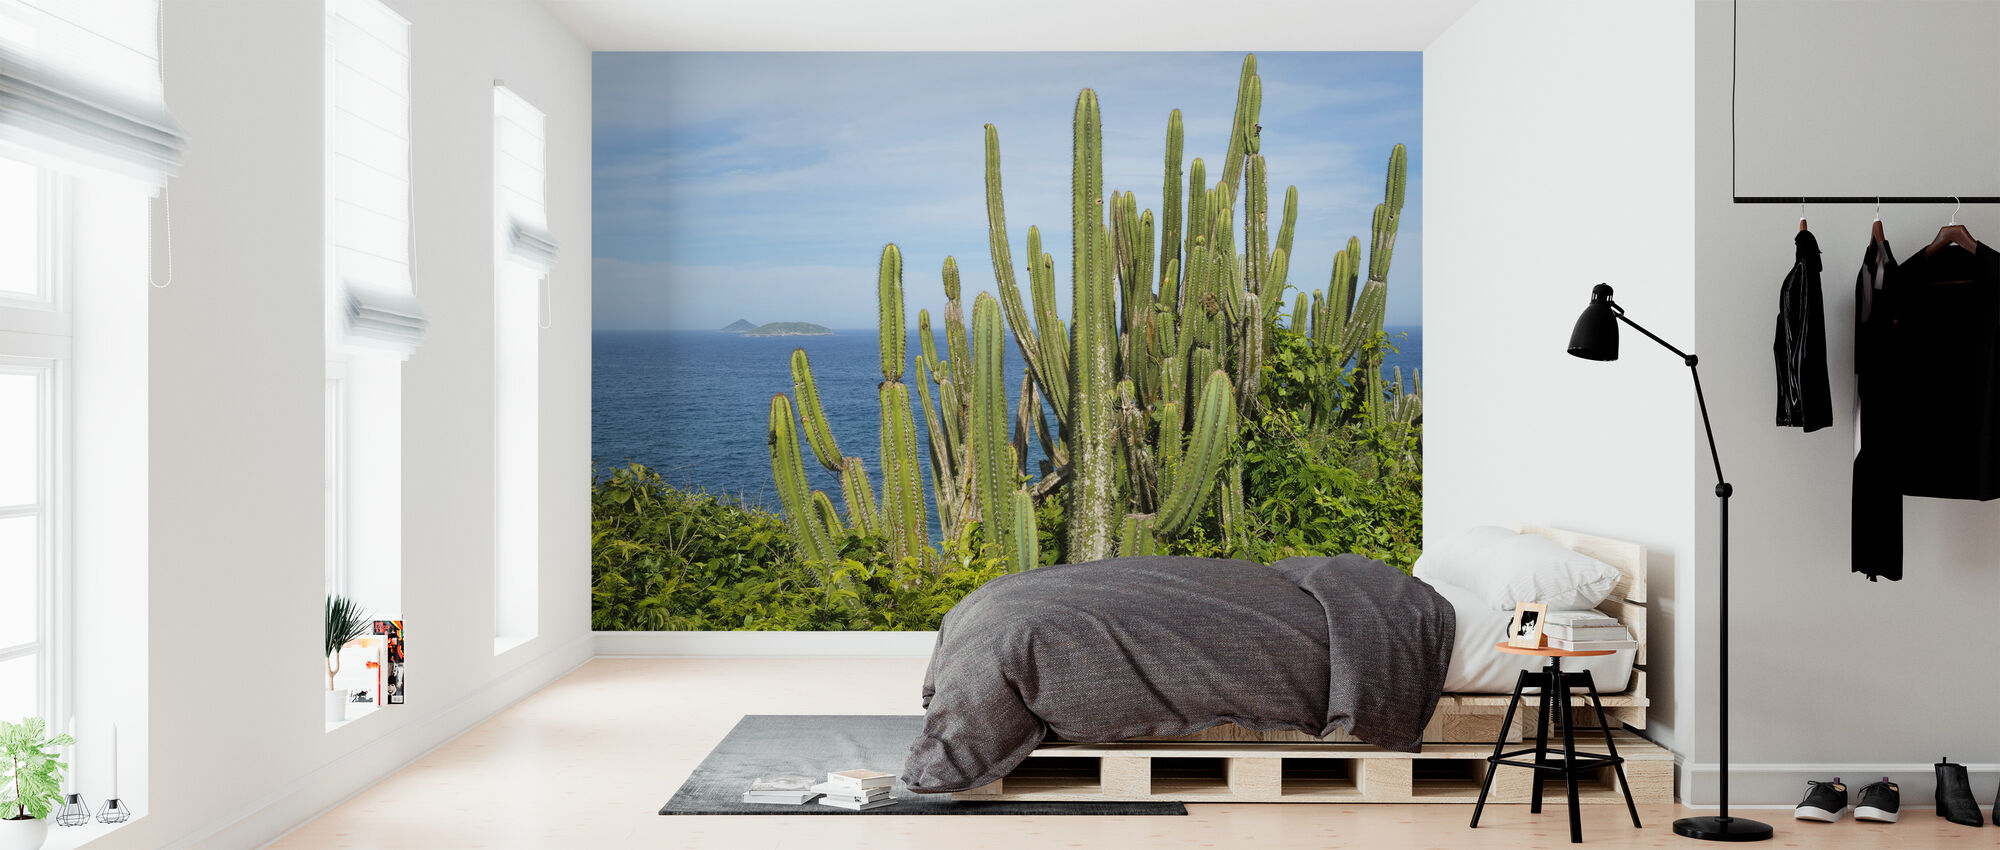 Cactus with a View - Wallpaper - Bedroom